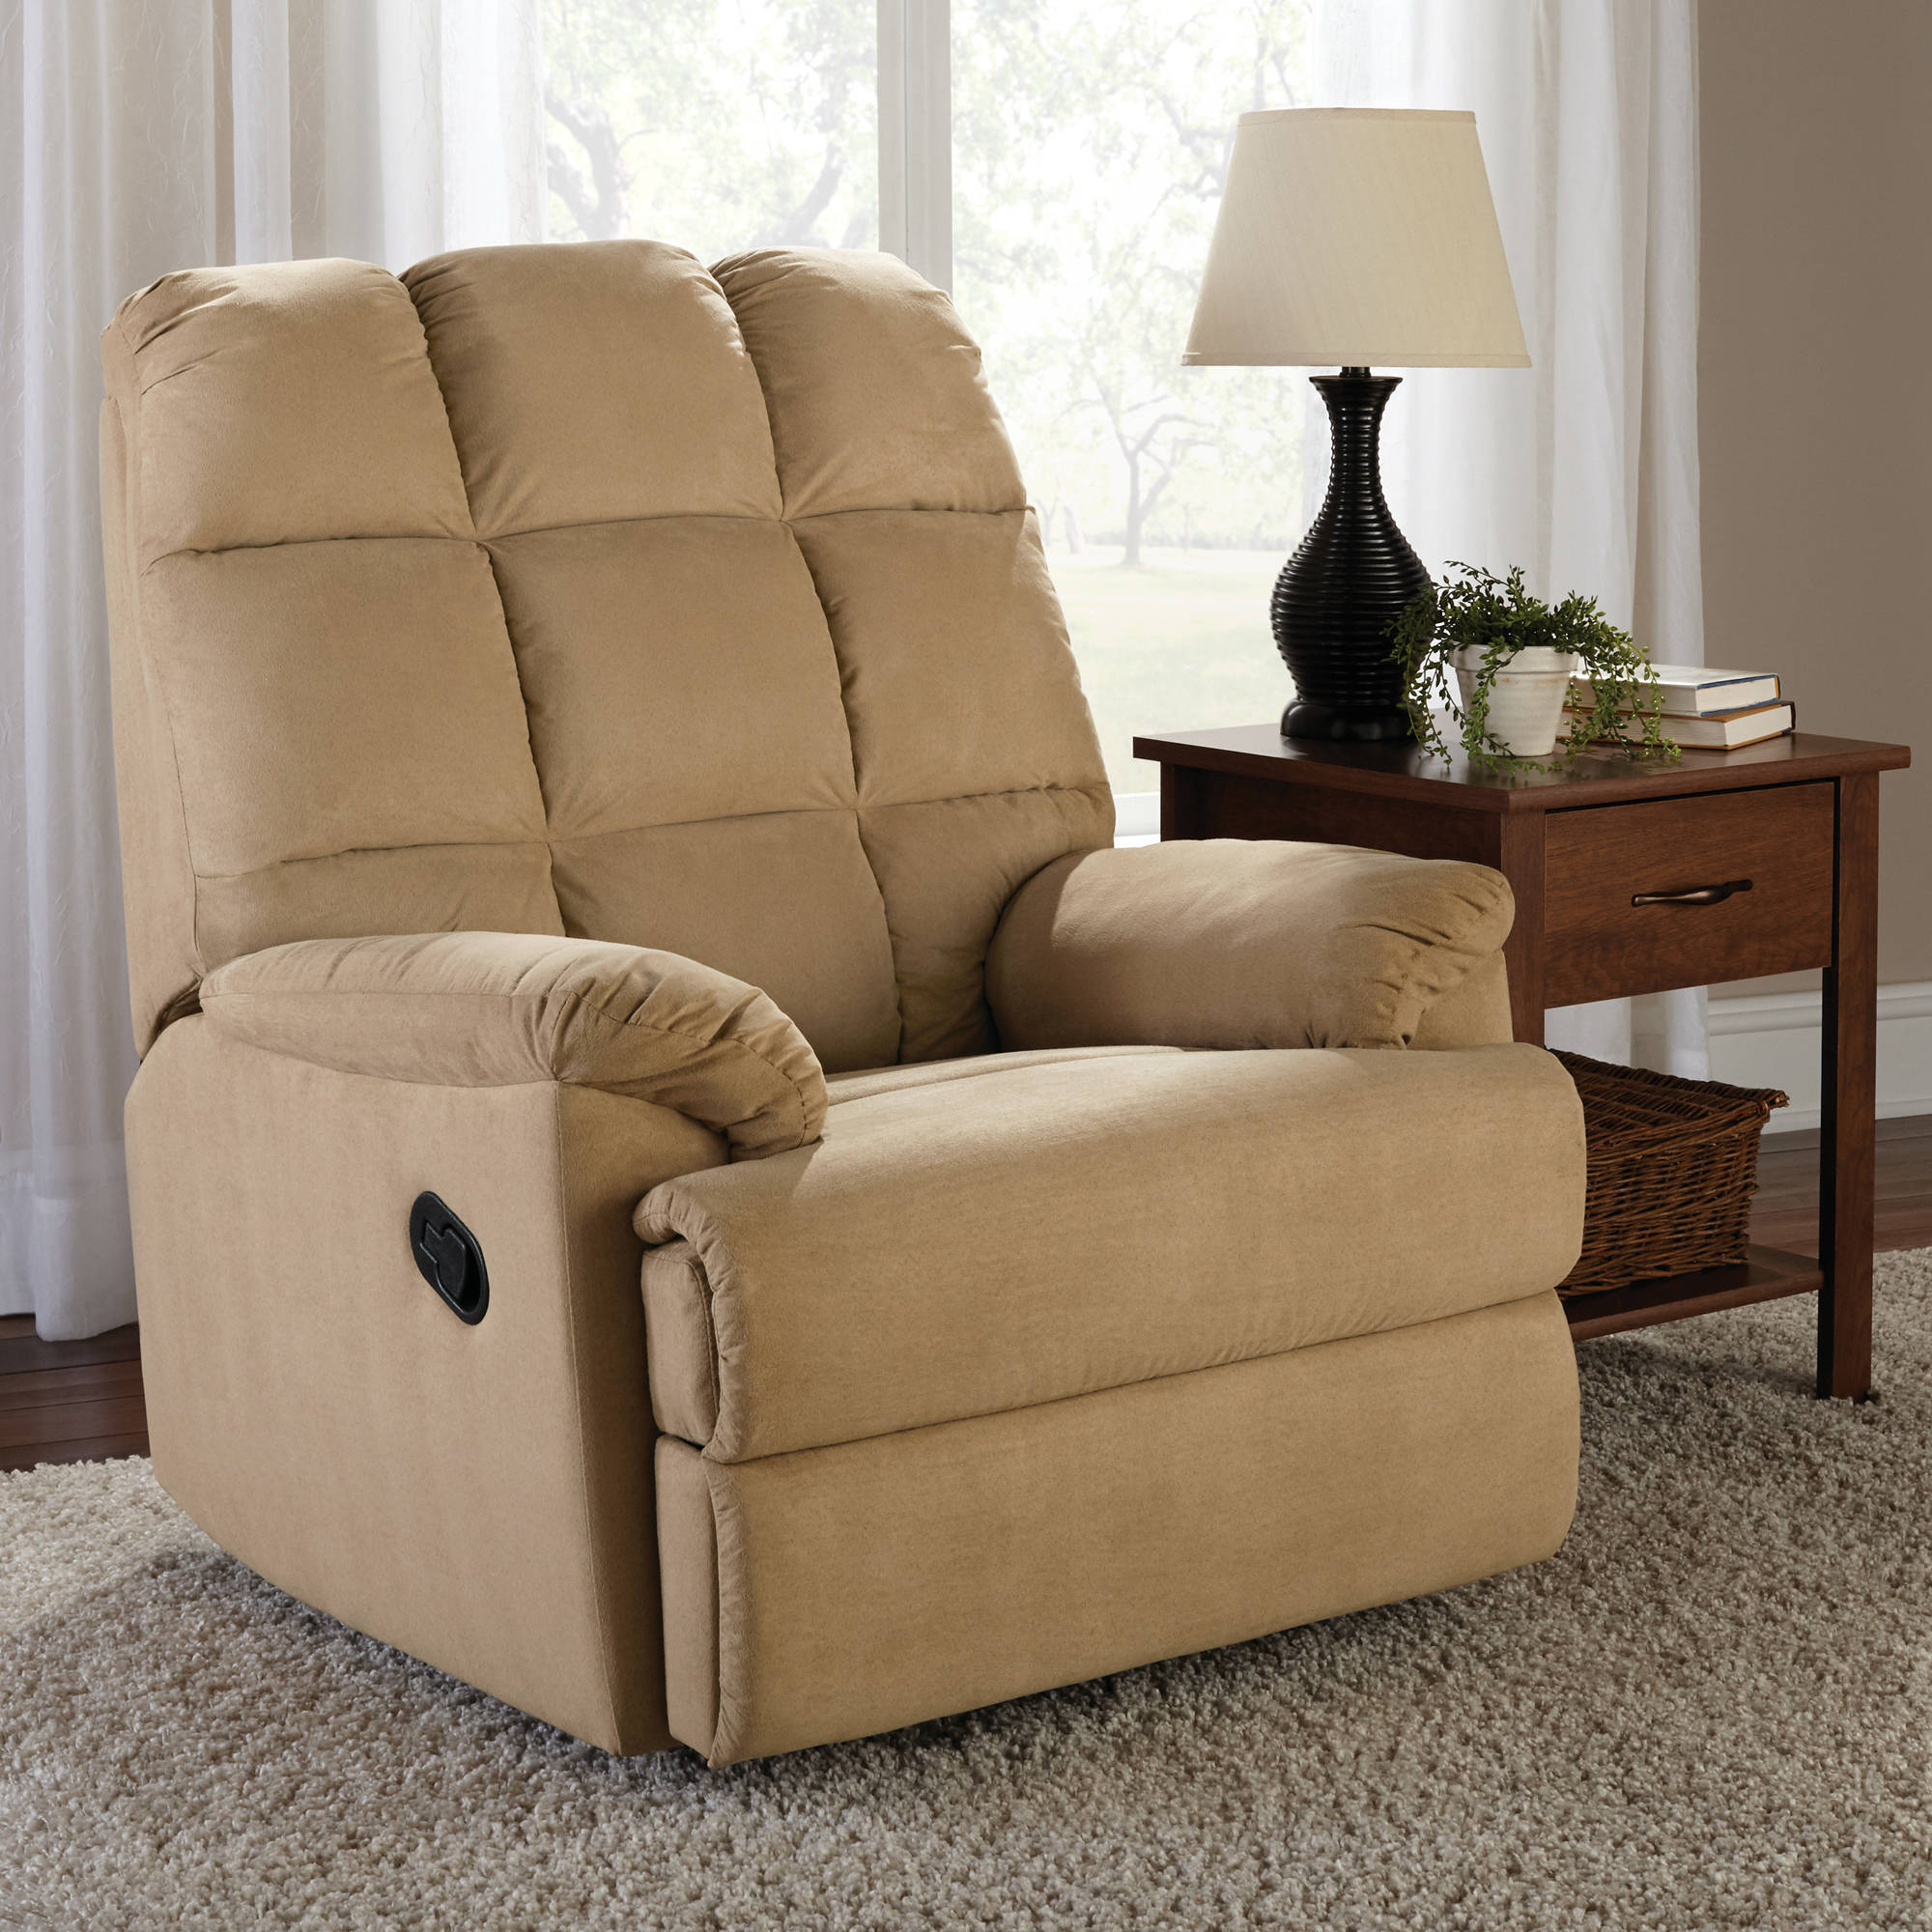 swivel small drawing rocker recliner saving recliners top bedrooms space on l chair sale big lots